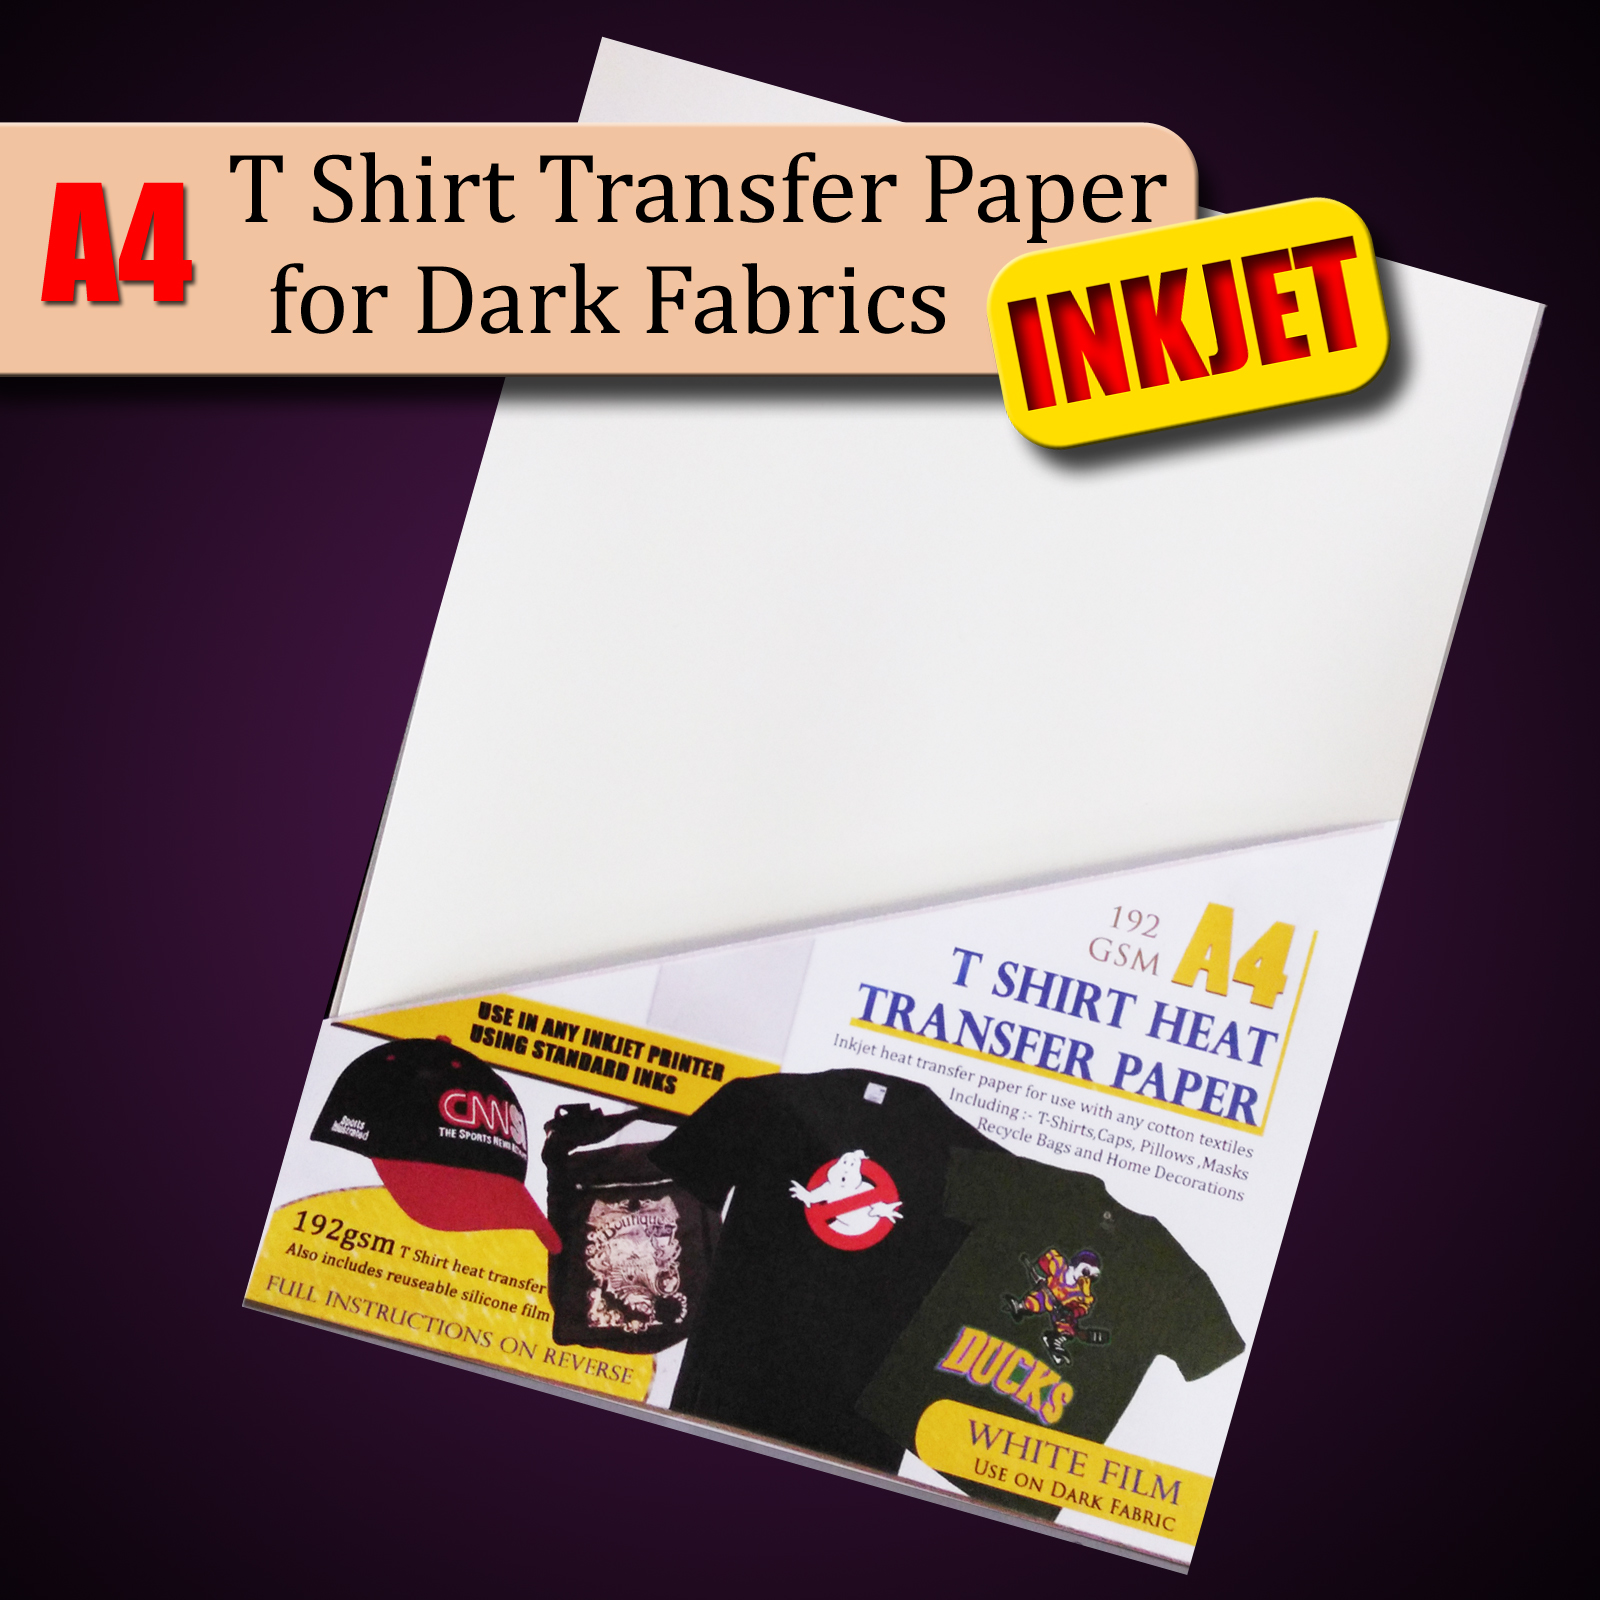 Details about T shirt Heat Transfer Paper For Dark Fabrics - 10 Sheet Pack  - A4 size - Inkjet